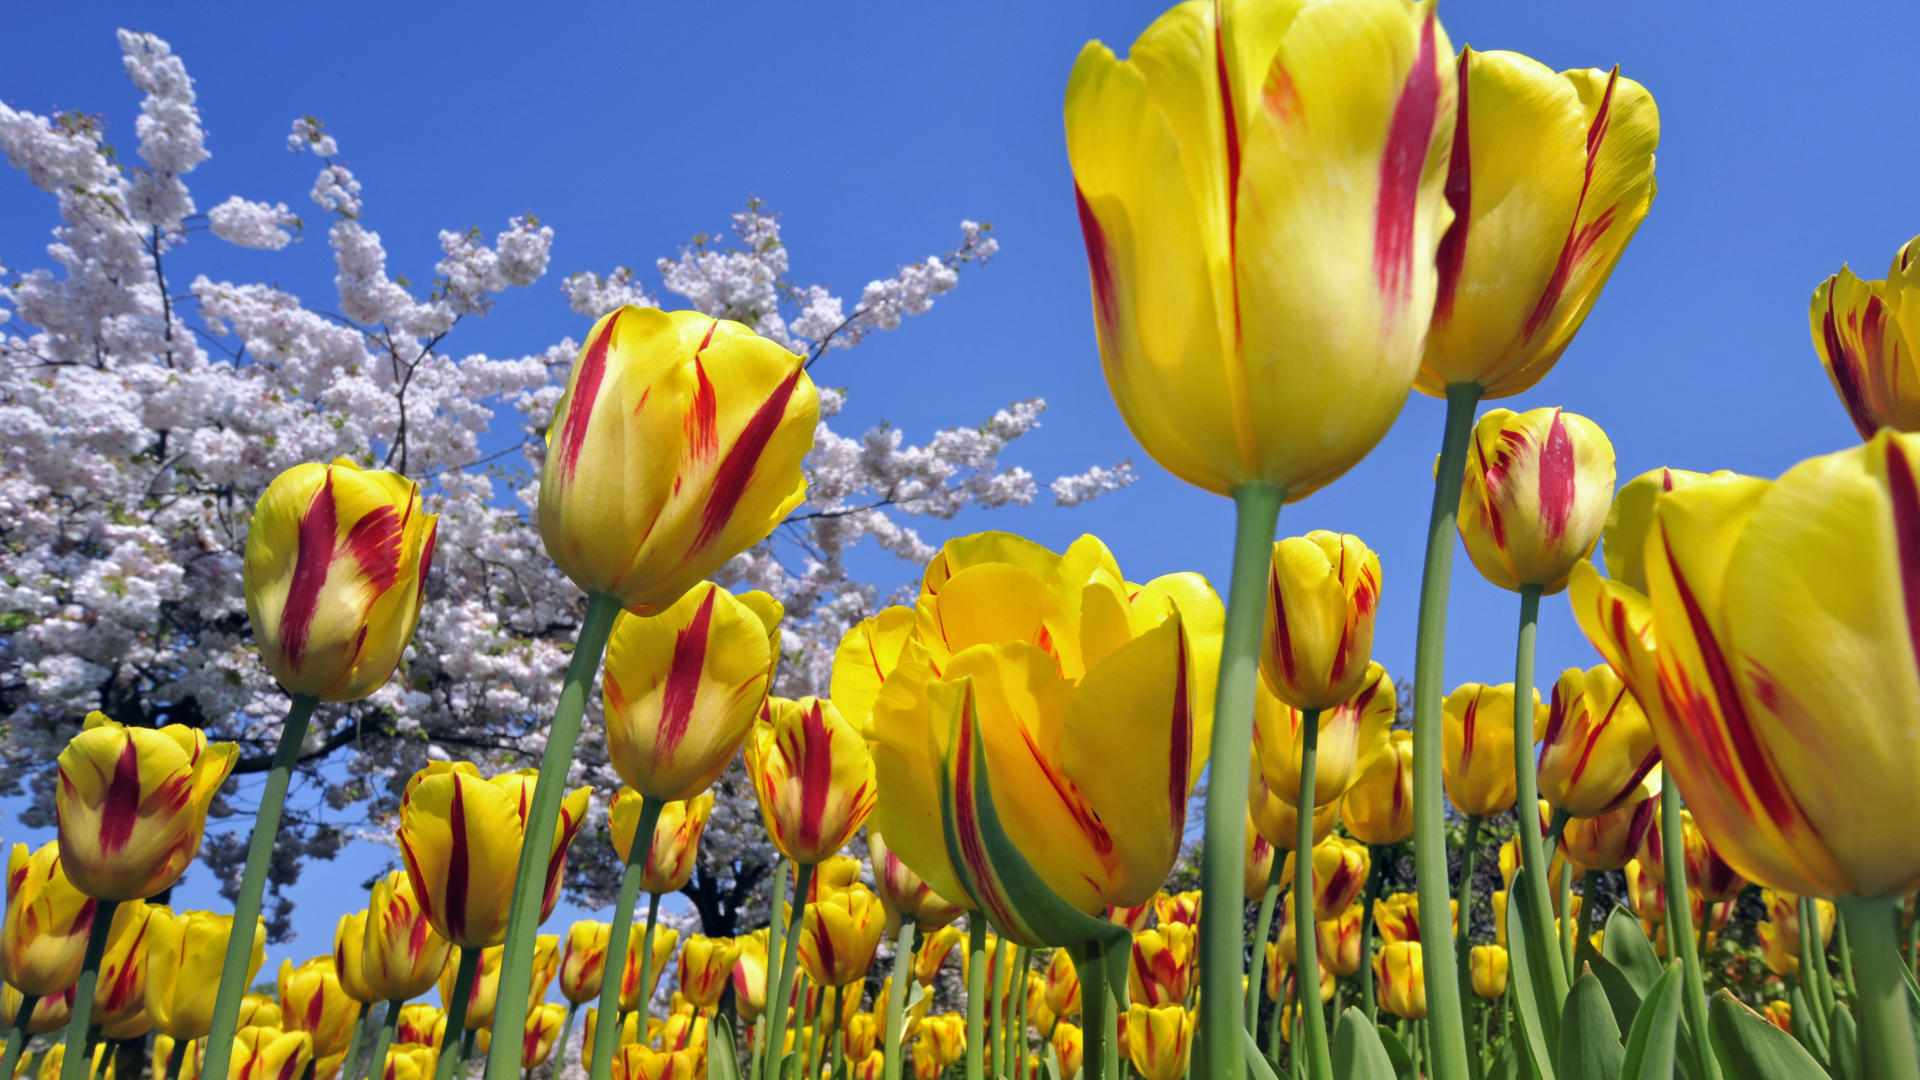 flowers full tulips wallpaper desktop free download